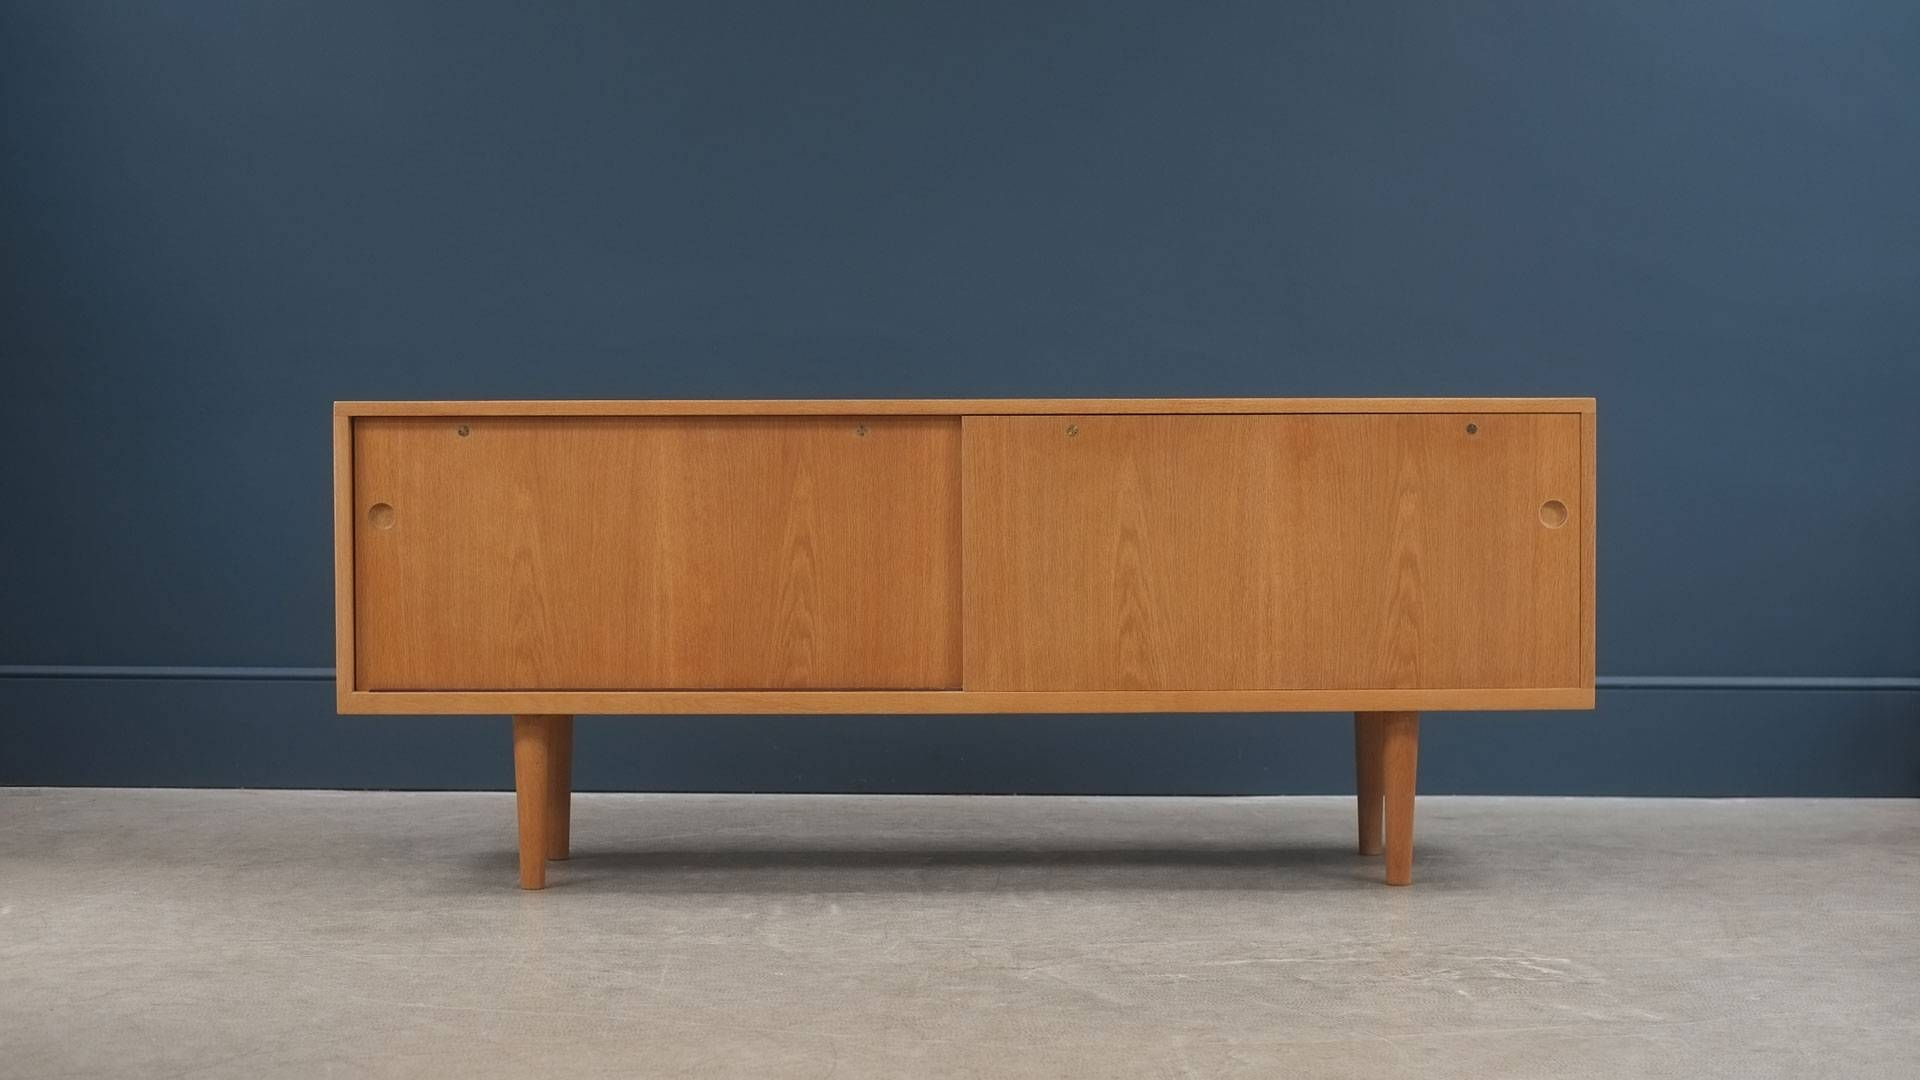 Hans Wegner Ry26 Sideboard | The Modern Warehouse With 2018 Wegner Sideboards (View 12 of 15)